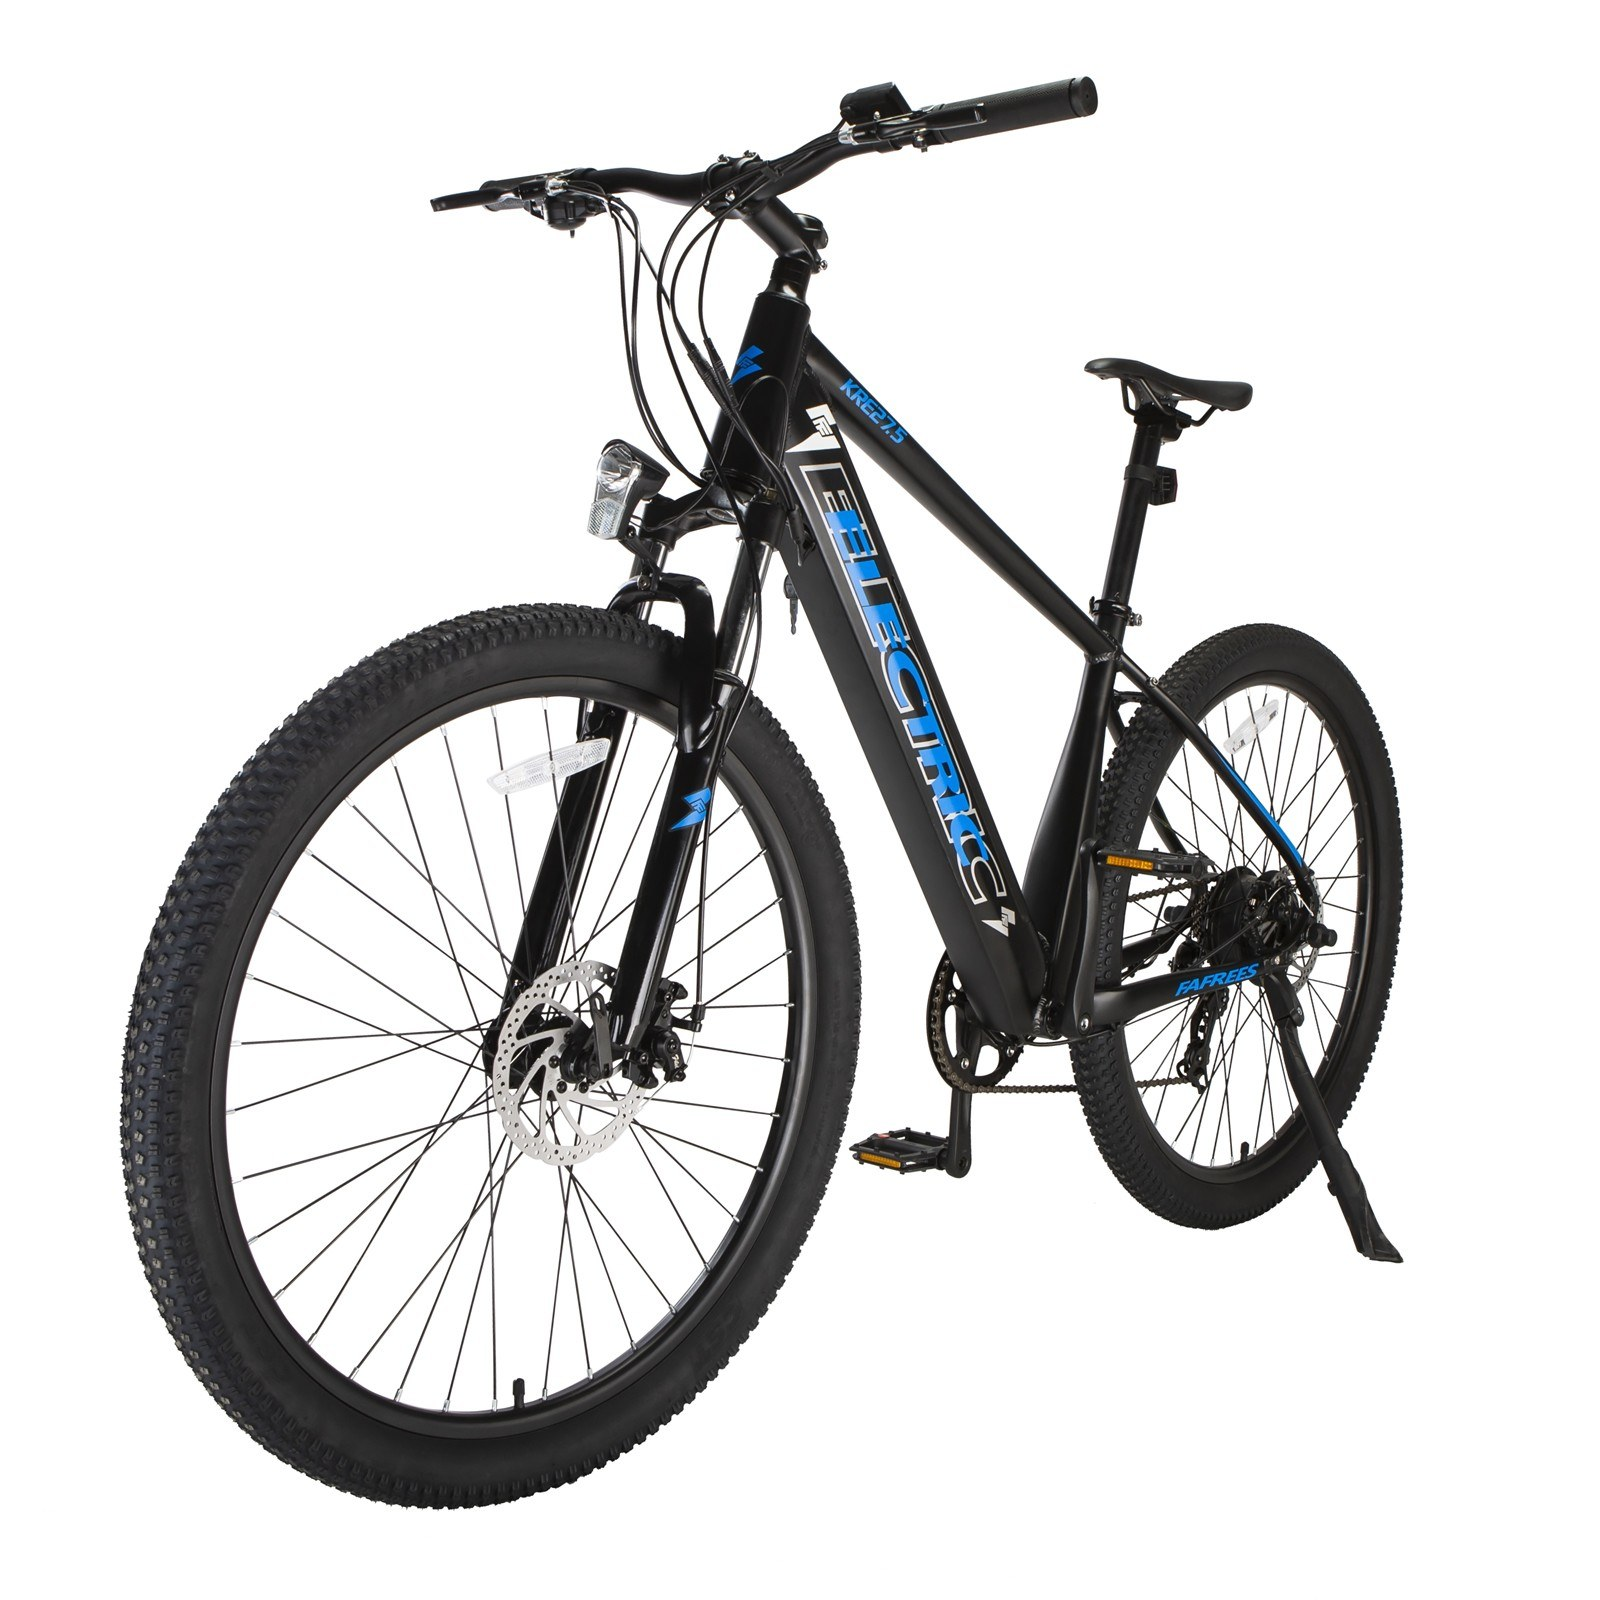 cafago.com - 50% OFF FAFREES KRE27.5 27.5 Inch Electric Mountain Bicycle with 36V 10AH Battery 80-100km Range,free shipping+$1136.19